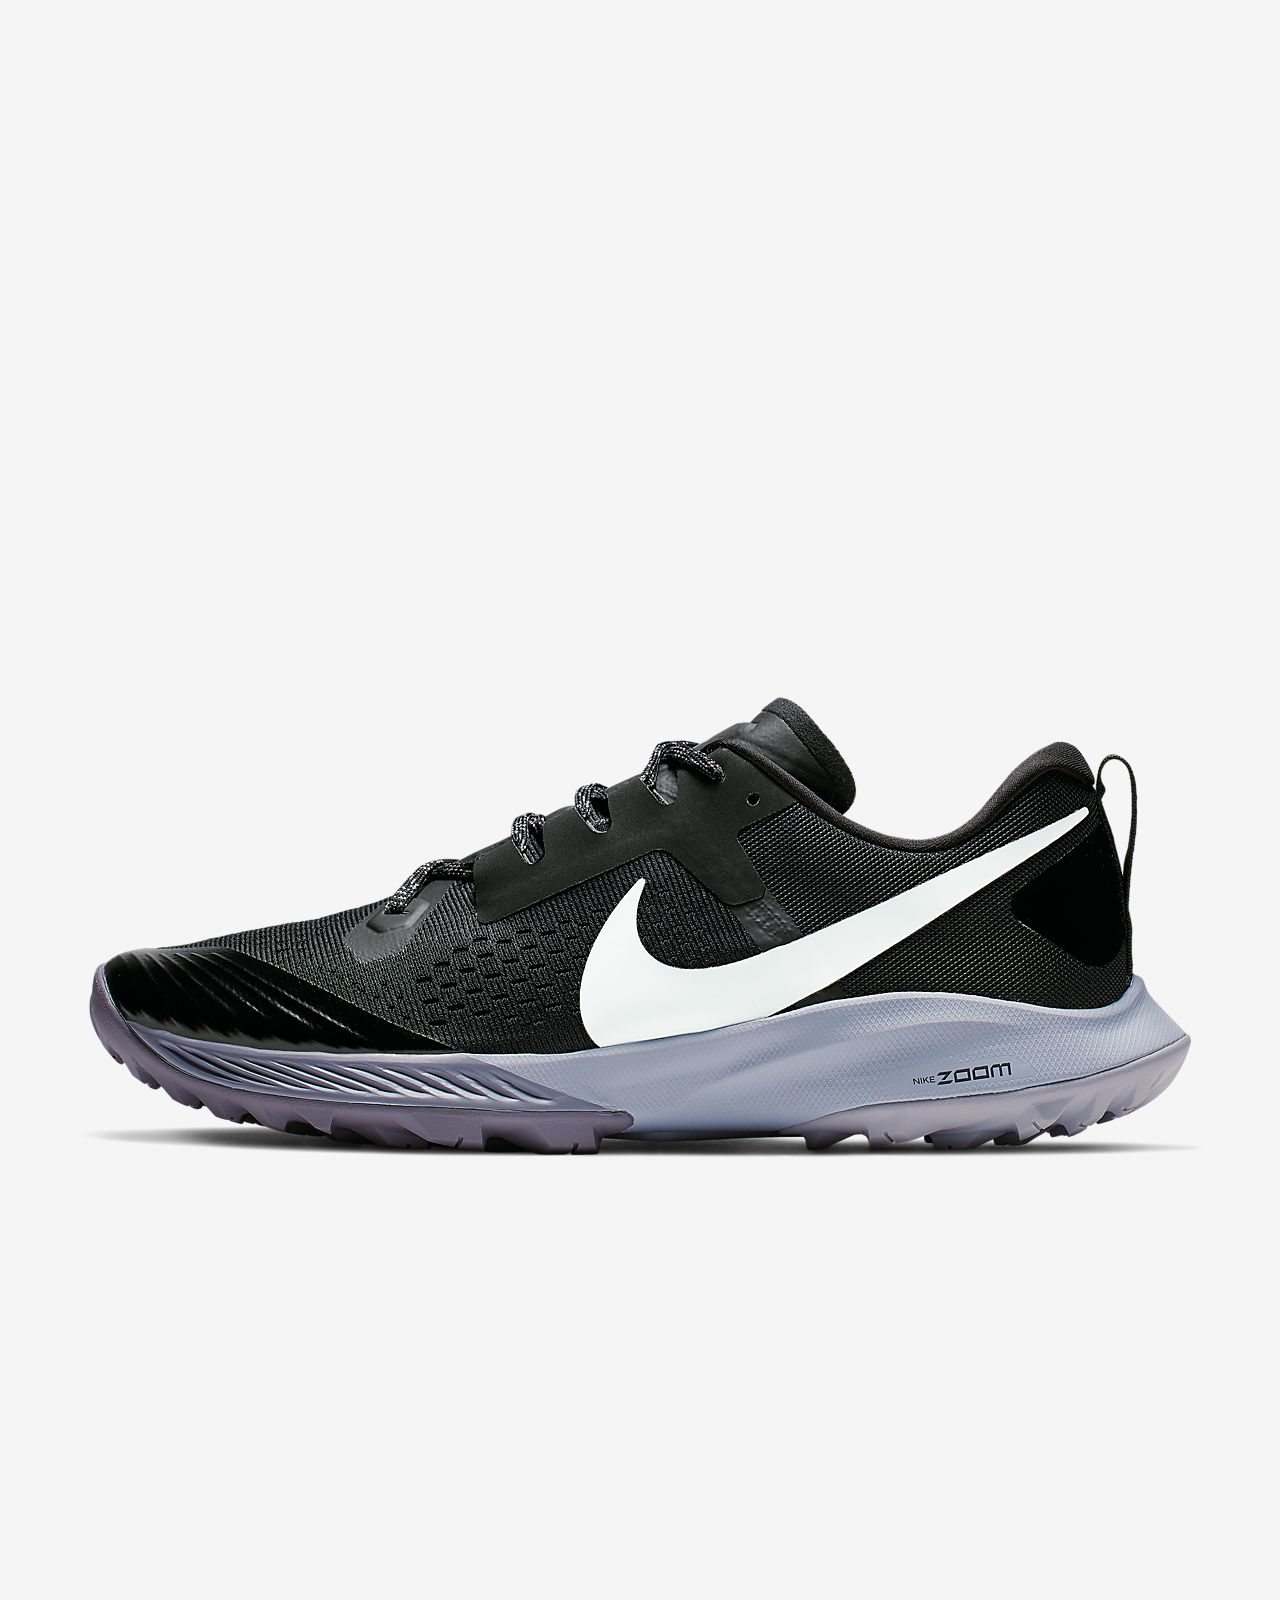 7694cbbf2b68 Nike Air Zoom Terra Kiger 5 Men s Running Shoe. Nike.com ZA